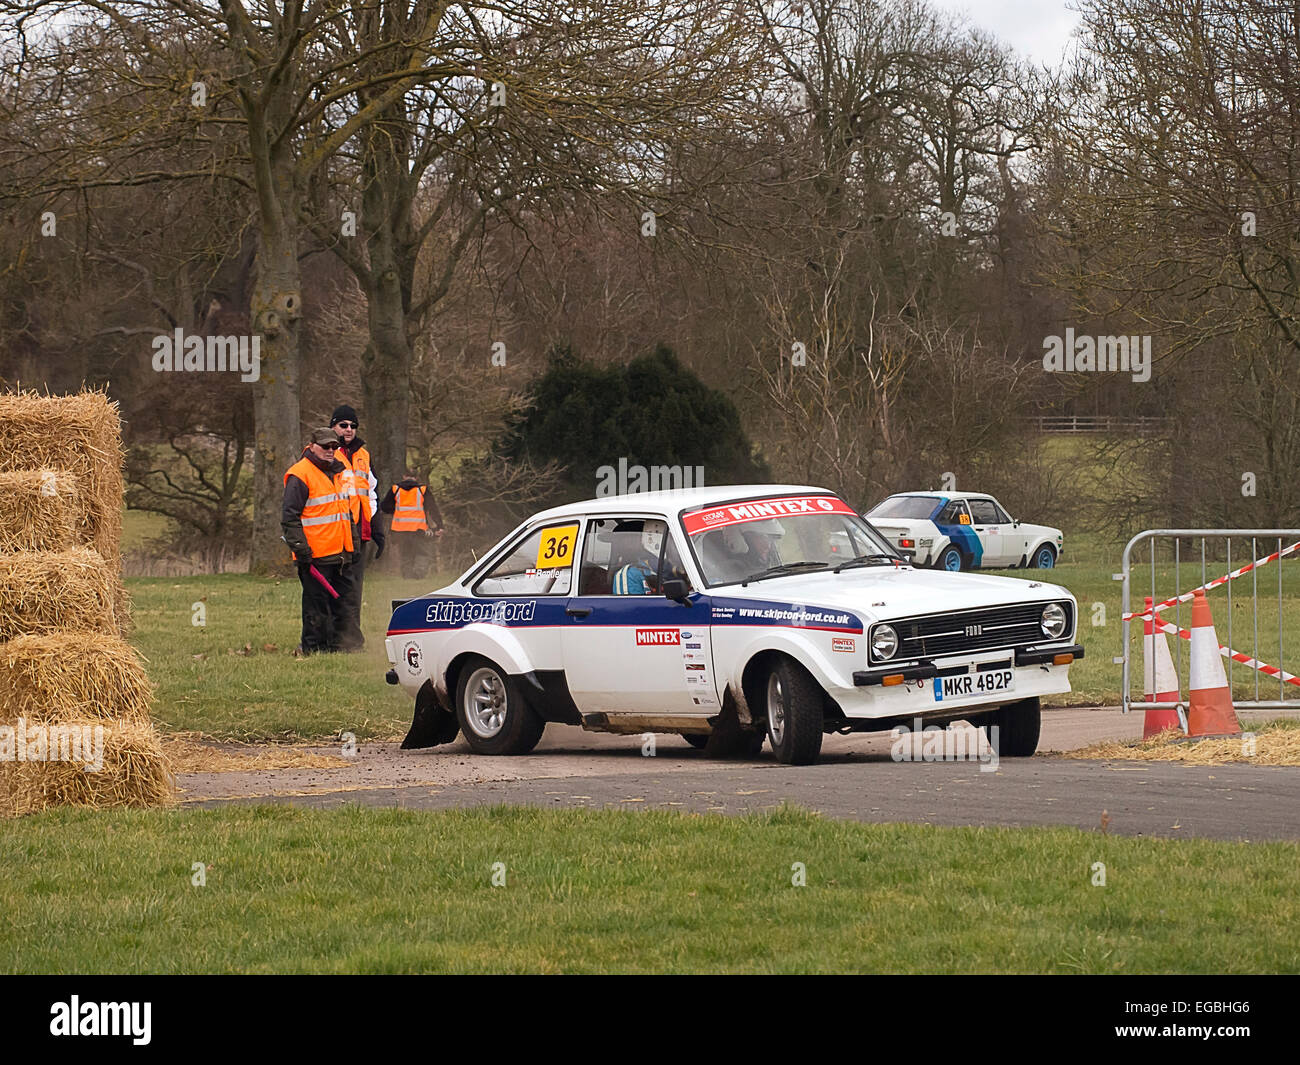 Warwickshire, UK. 21st Feb, 2015. Ford Escort MKII Rally car on Race Retro special stage 21/02/2015 Credit:  Martyn - Stock Image